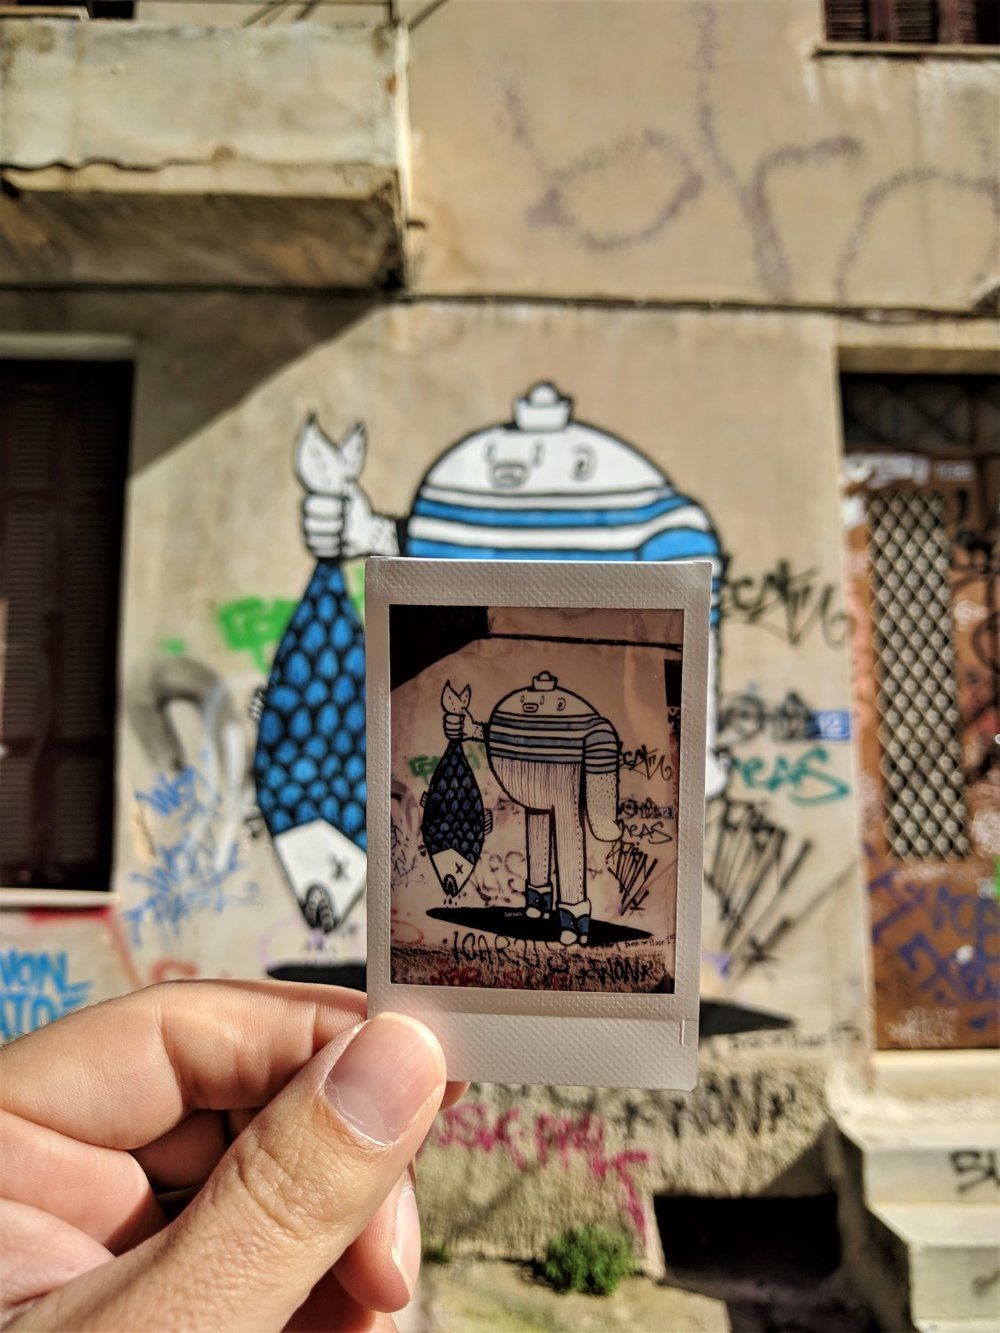 """Another cute graffiti on a polaroid image, captured in our """" Athens Instagram Photo Tour """"."""